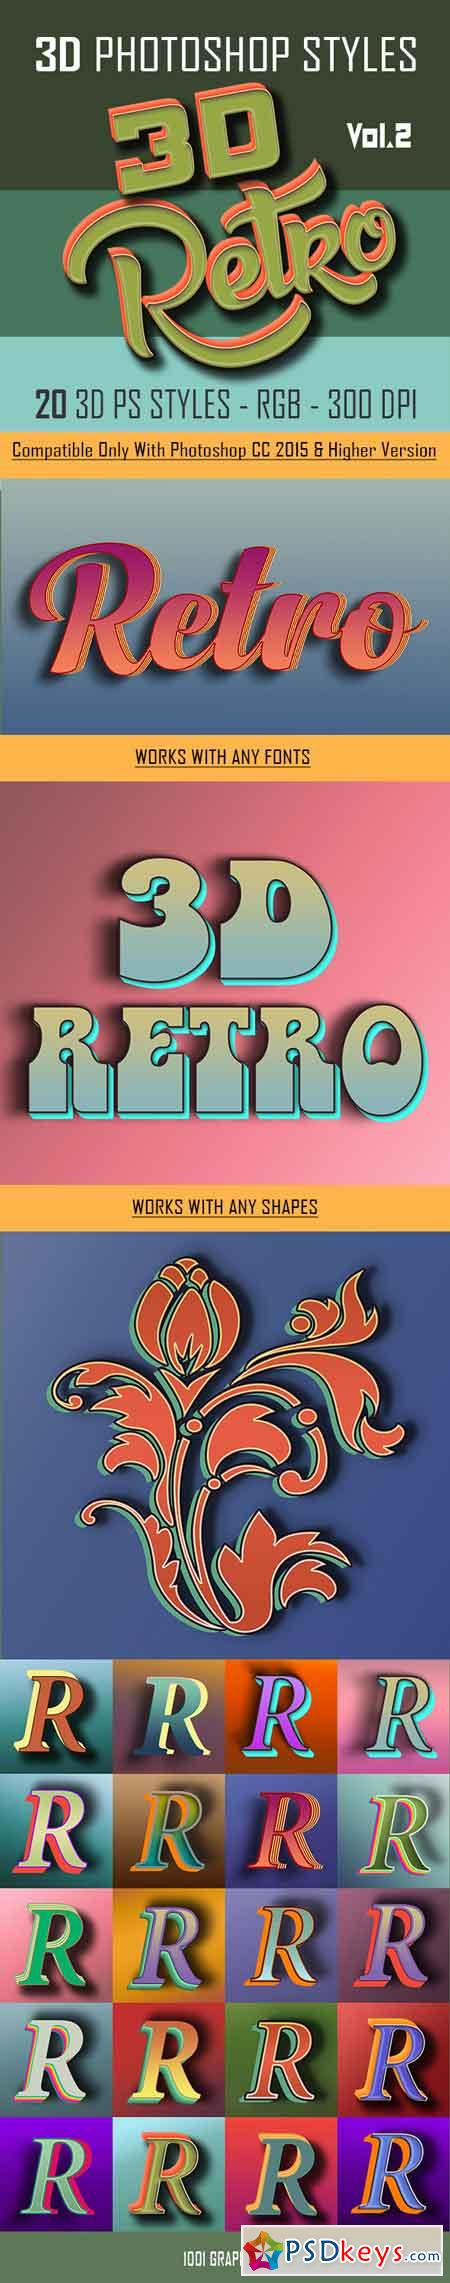 20 3D Retro Photoshop Styles asl Vol.2 22813719